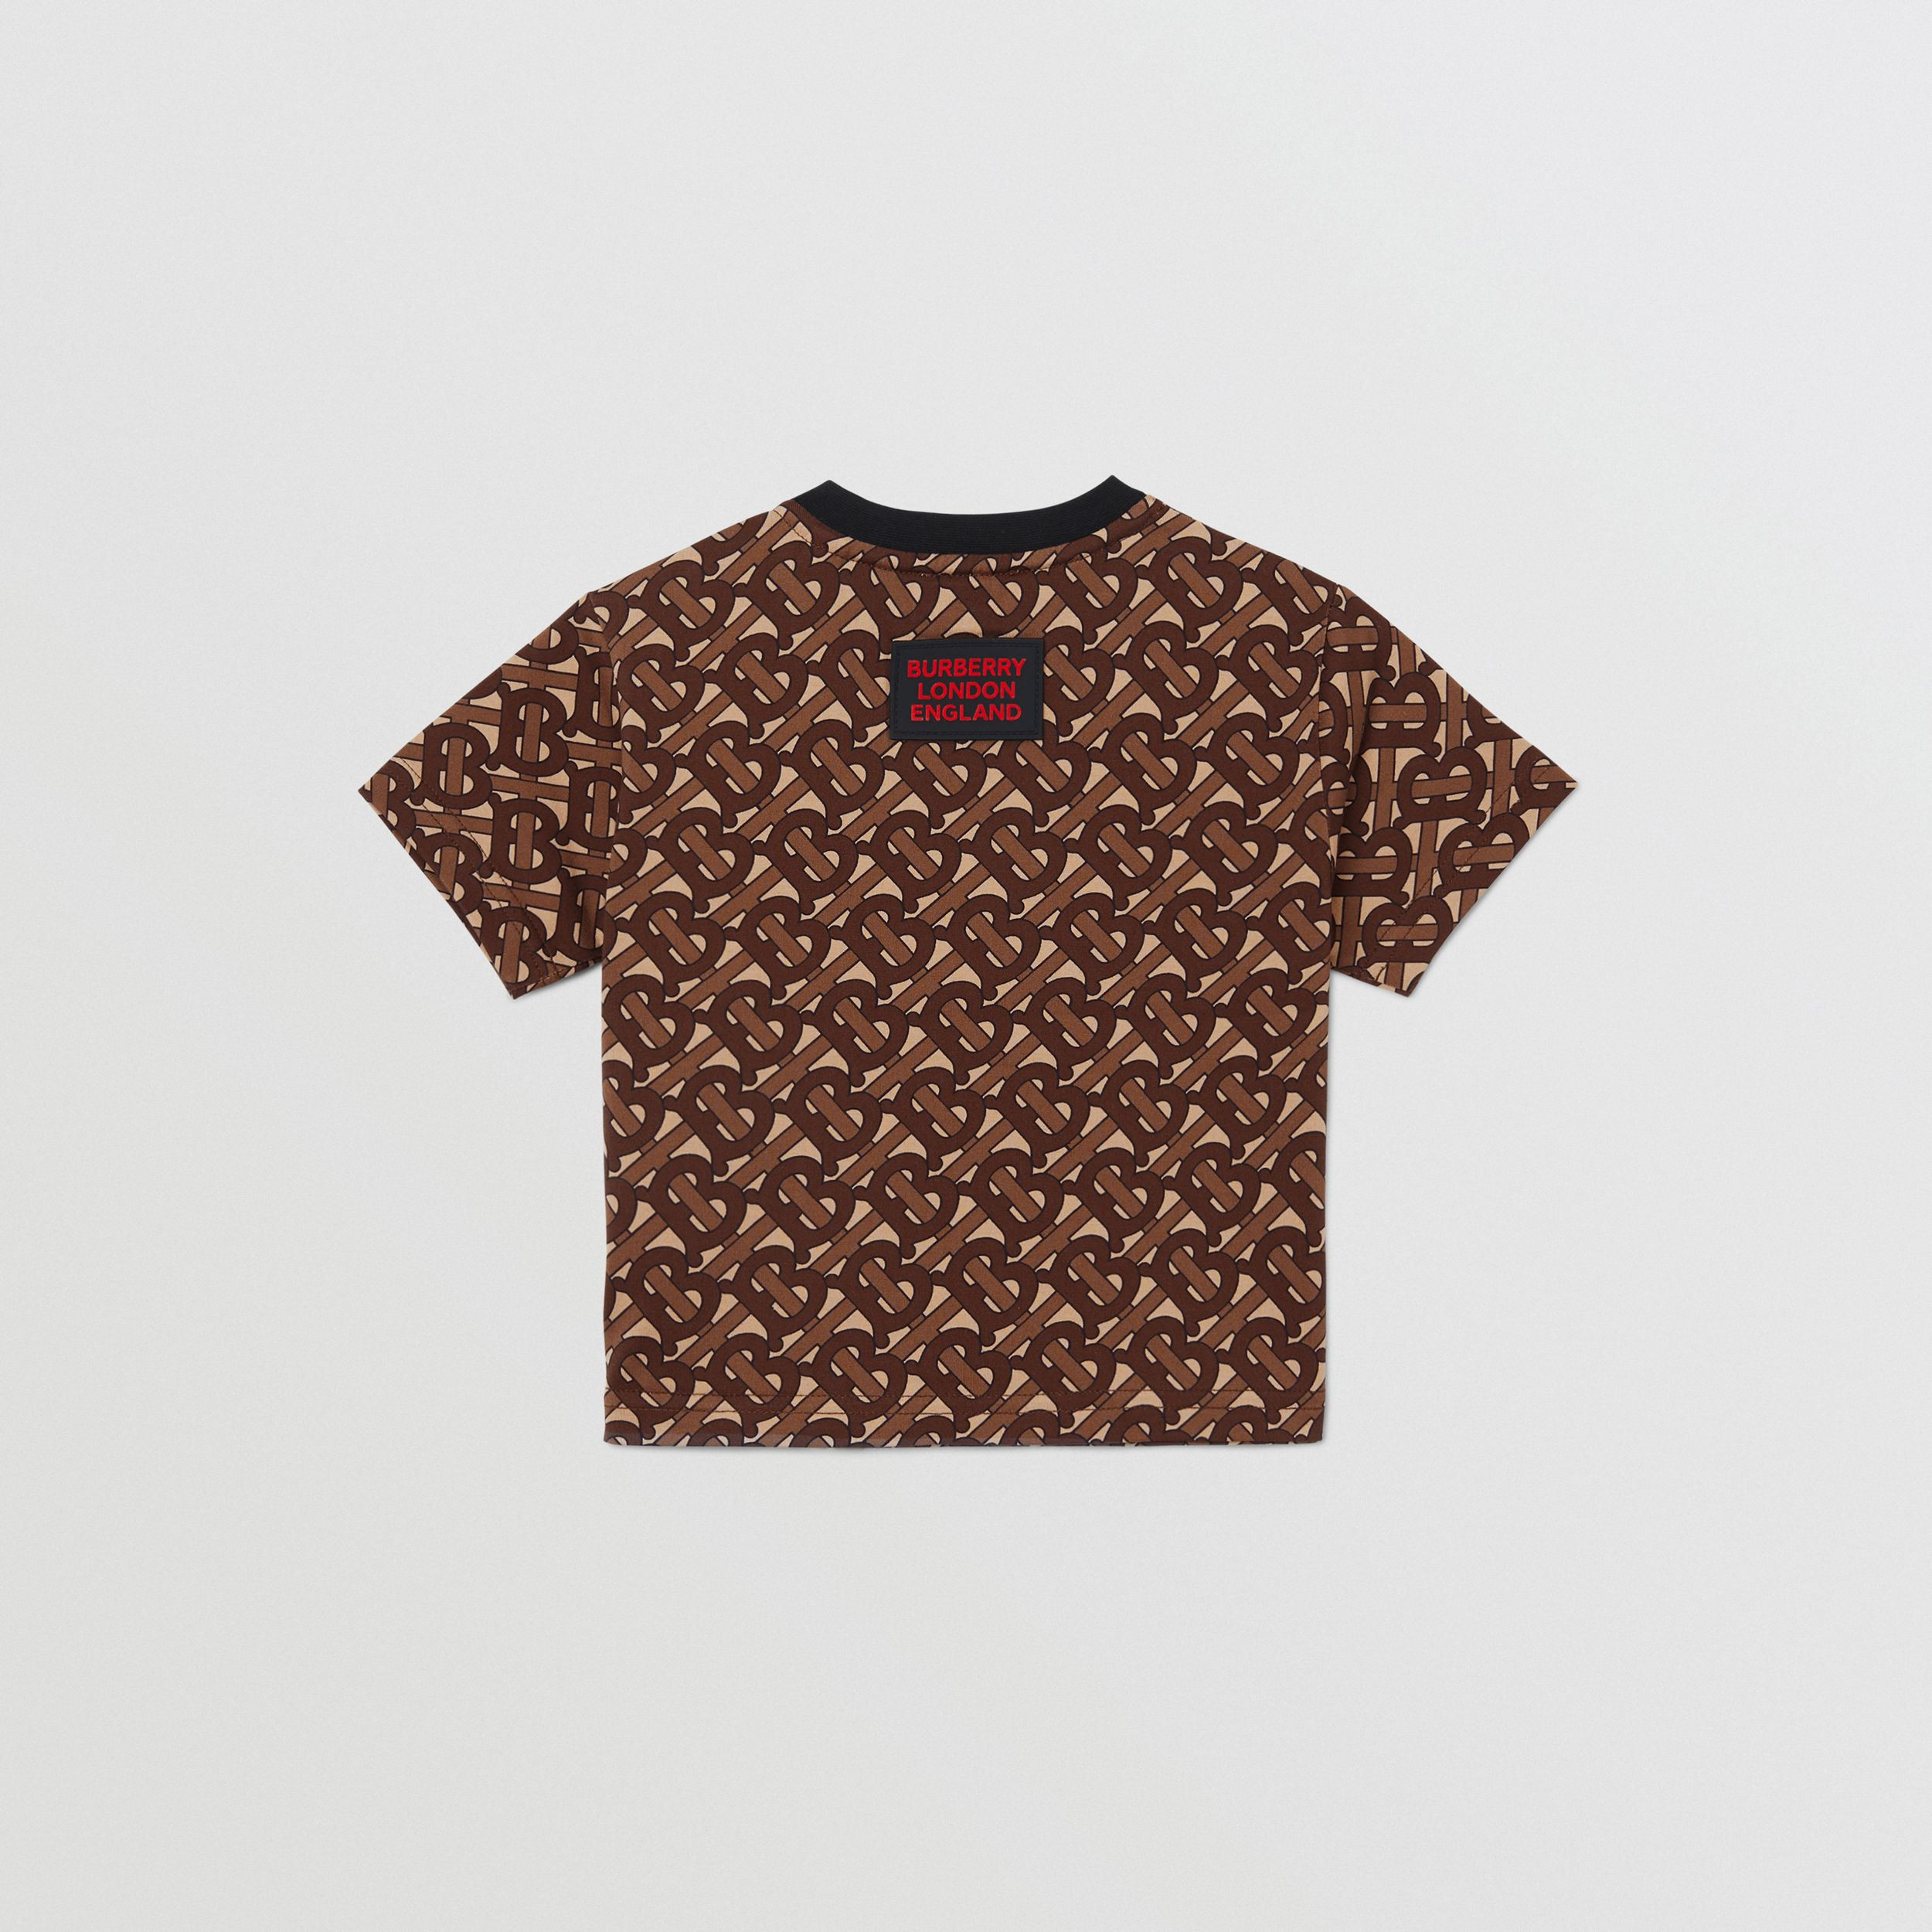 Monogram Stripe Print Cotton T-shirt in Bridle Brown - Children | Burberry - 3